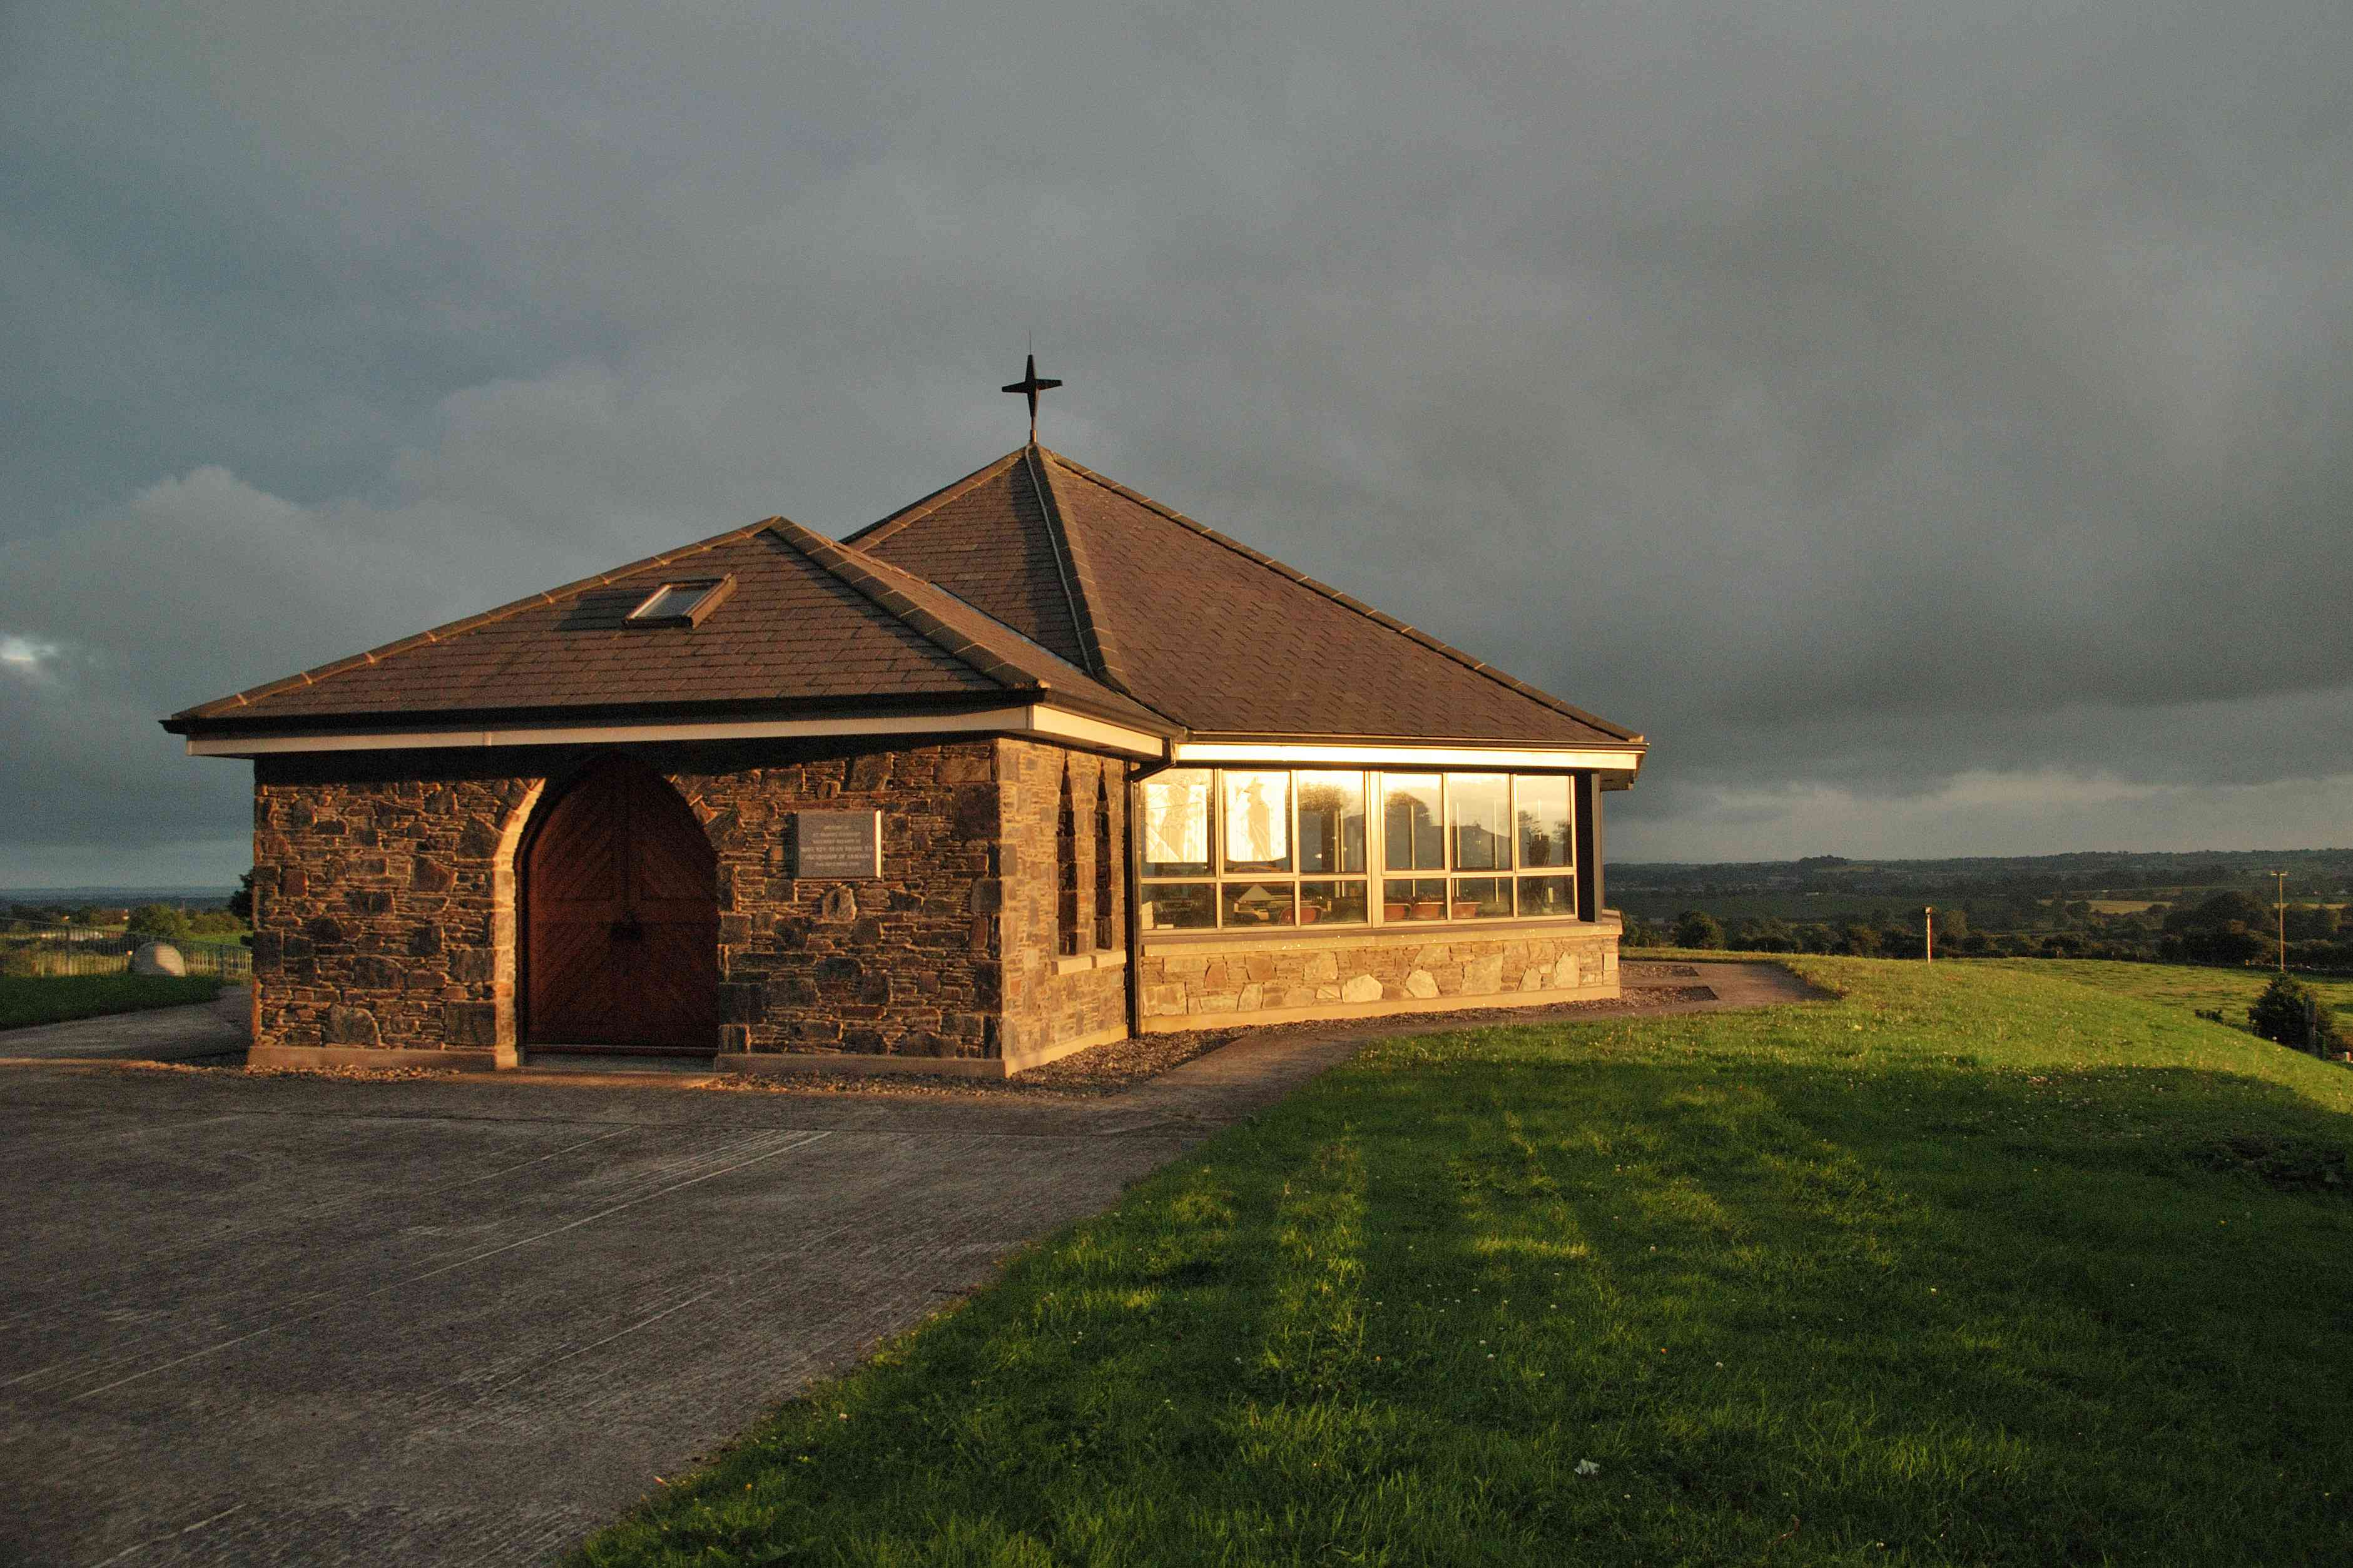 St Brigid's Shrine captured at sunset in Faughart, Ireland on a cloudy